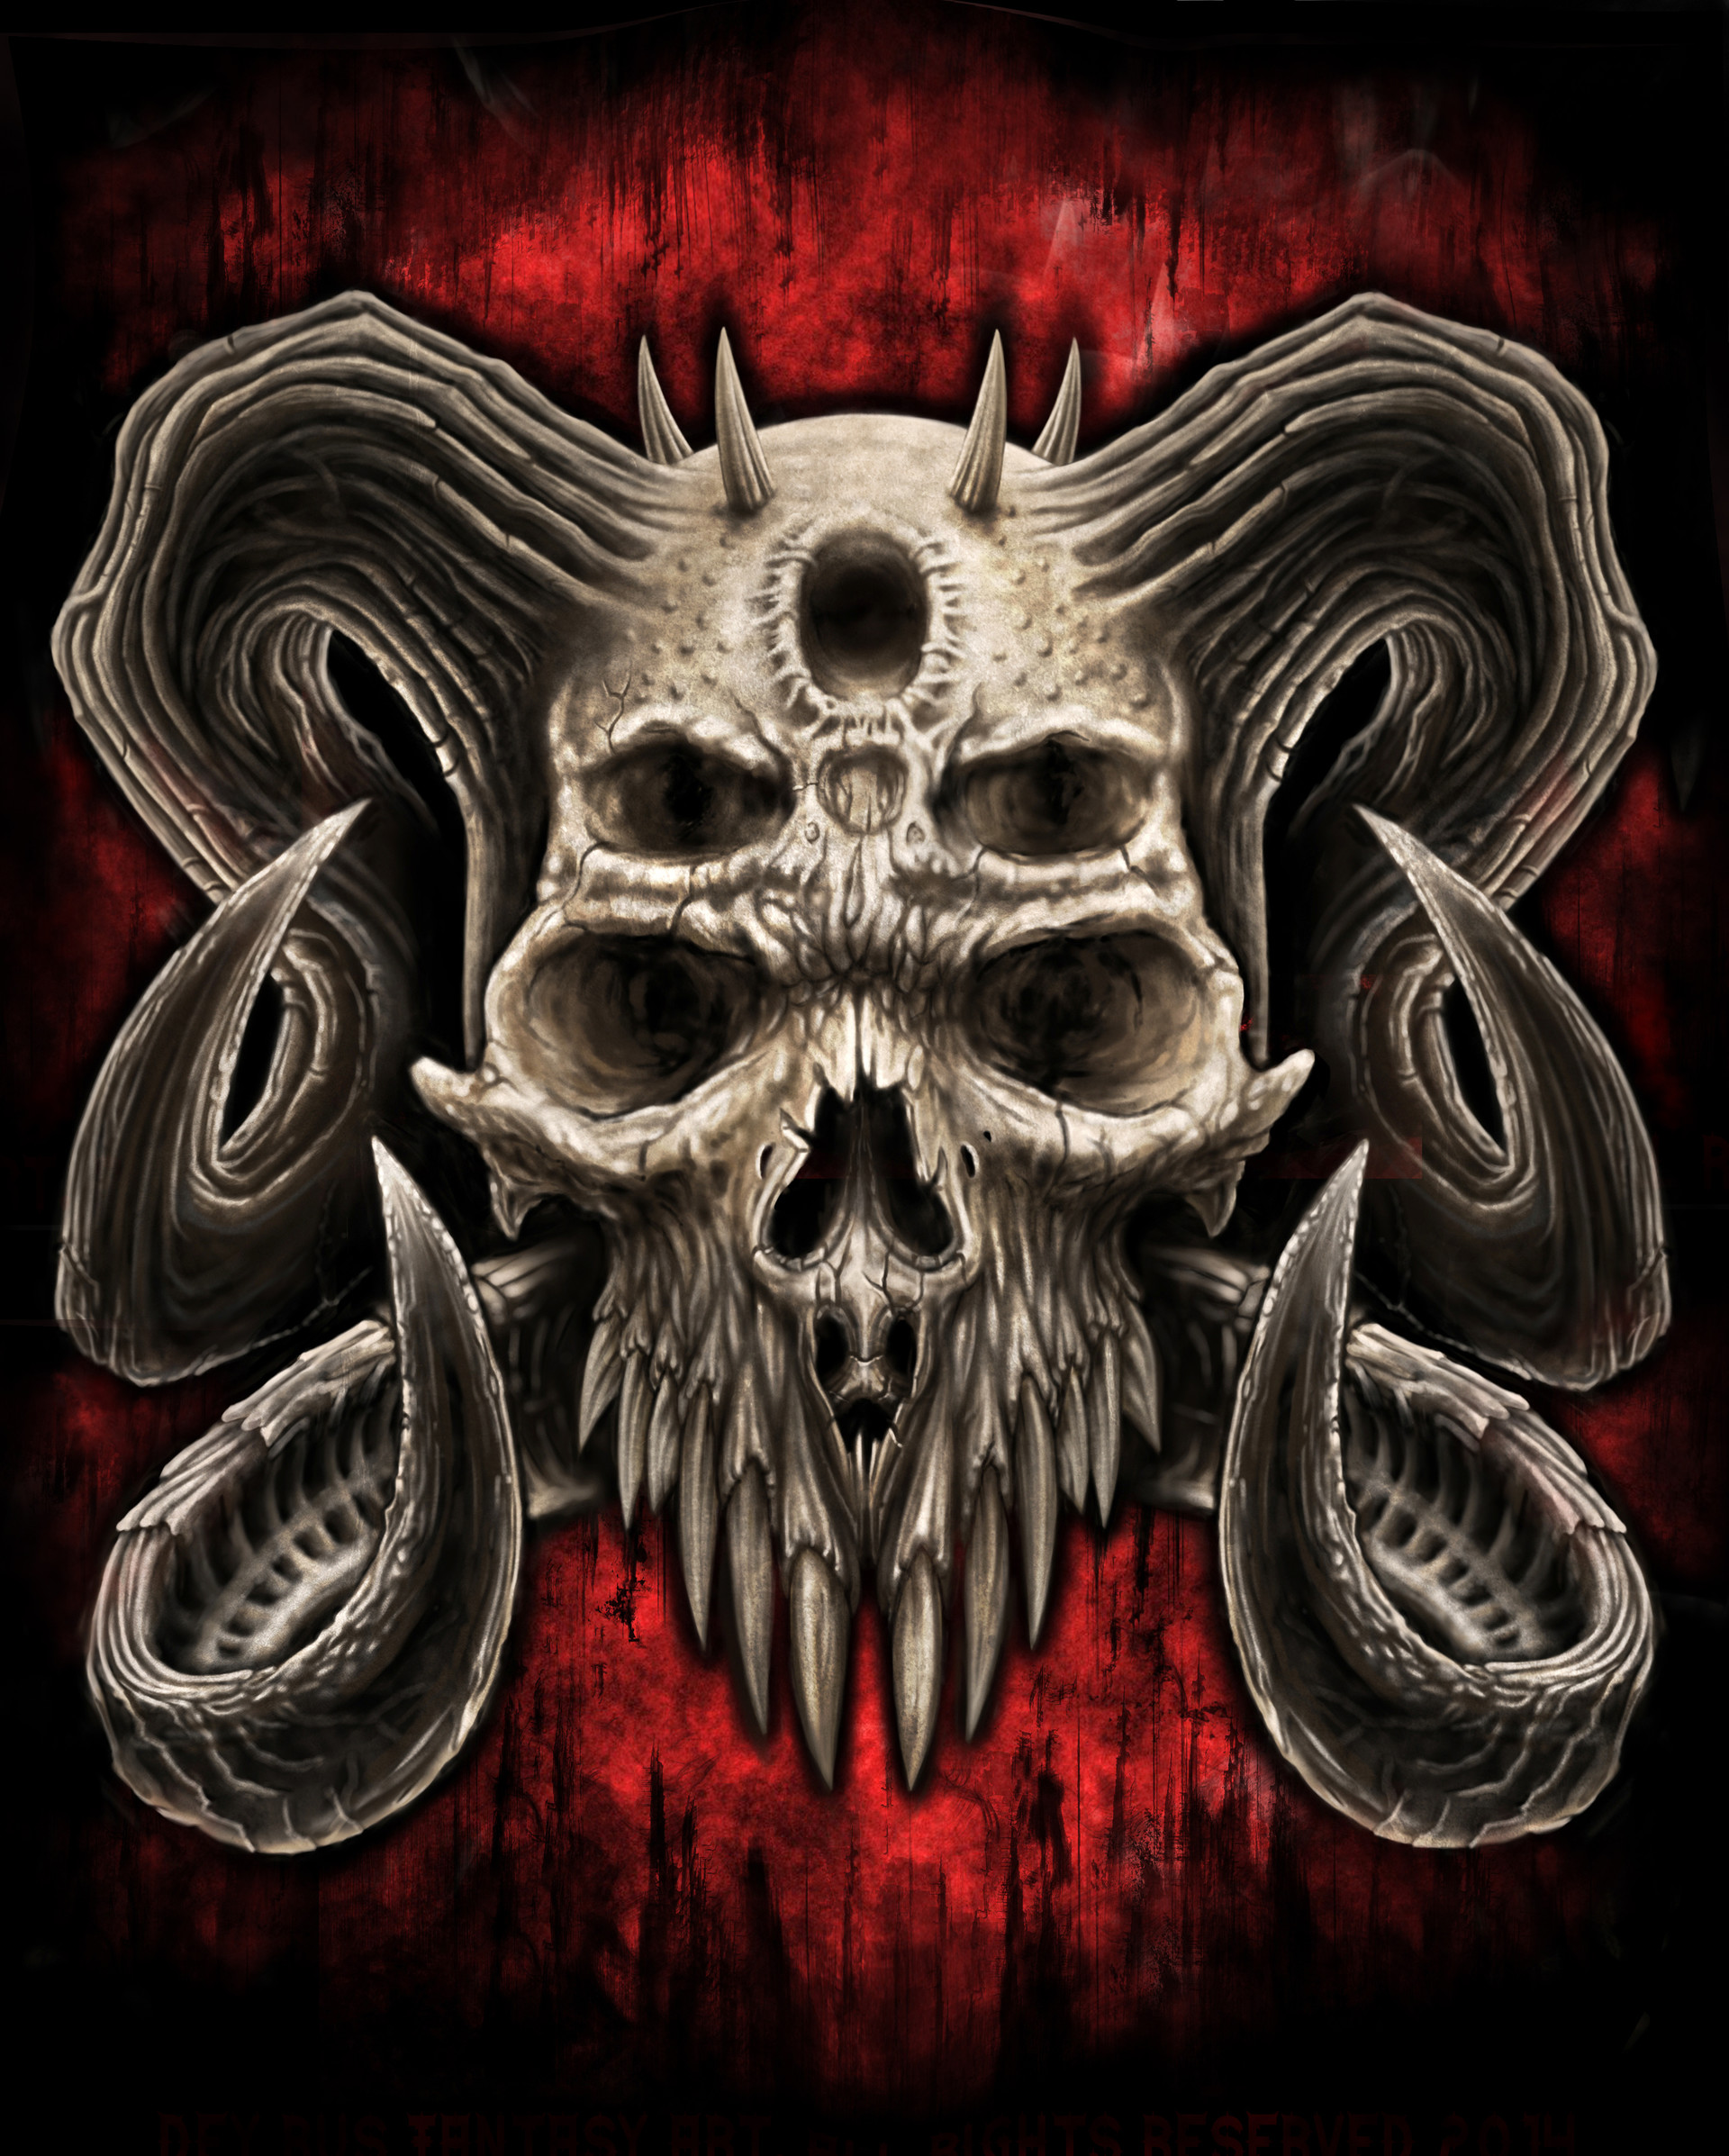 Pictures of skulls and demons